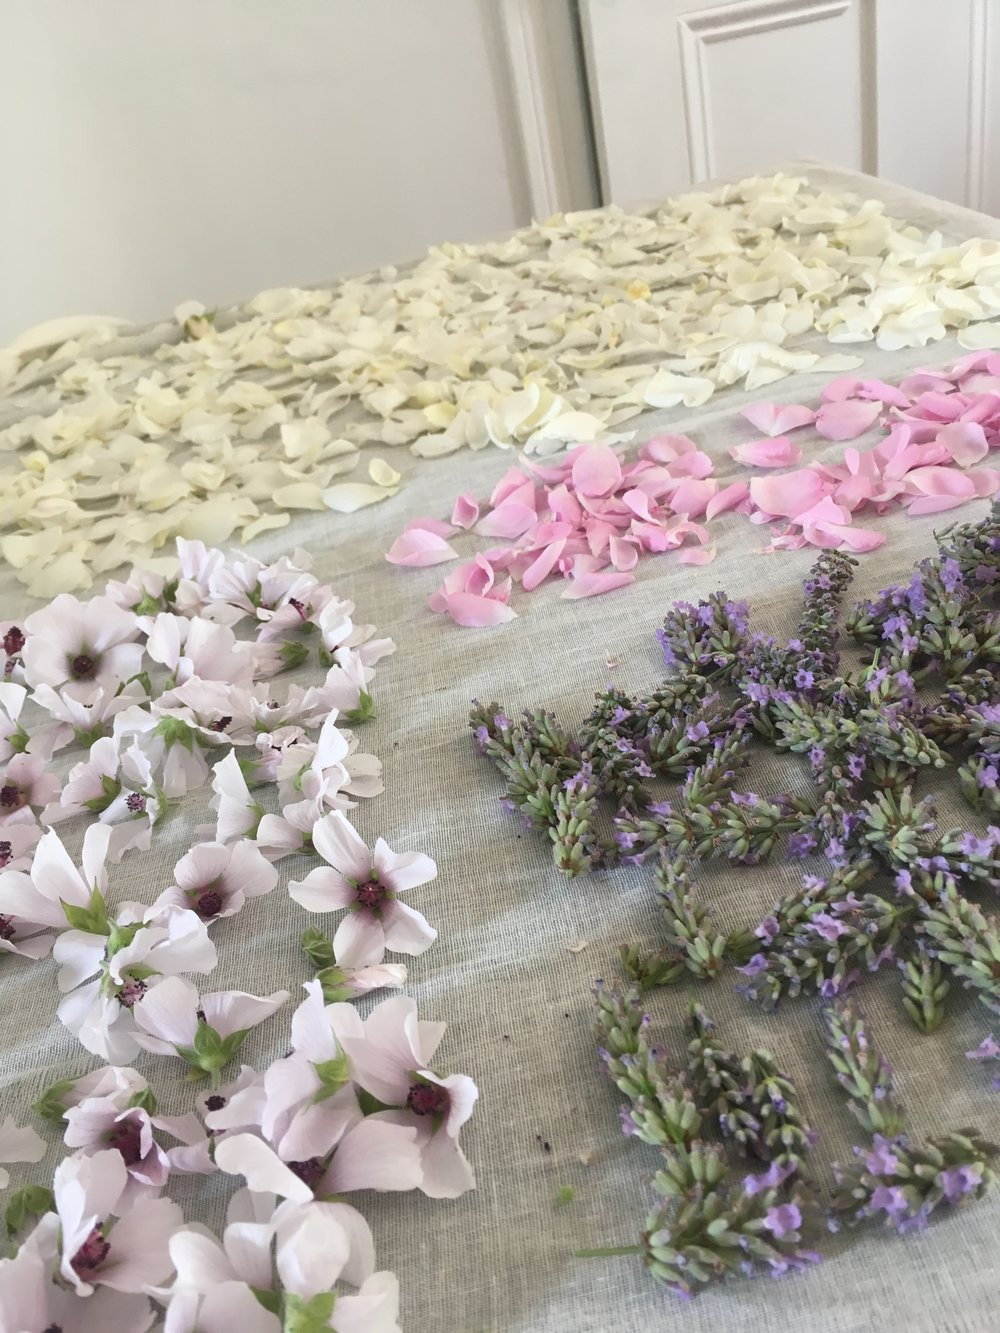 Laying flowers out to dry on sheets of muslin cloth